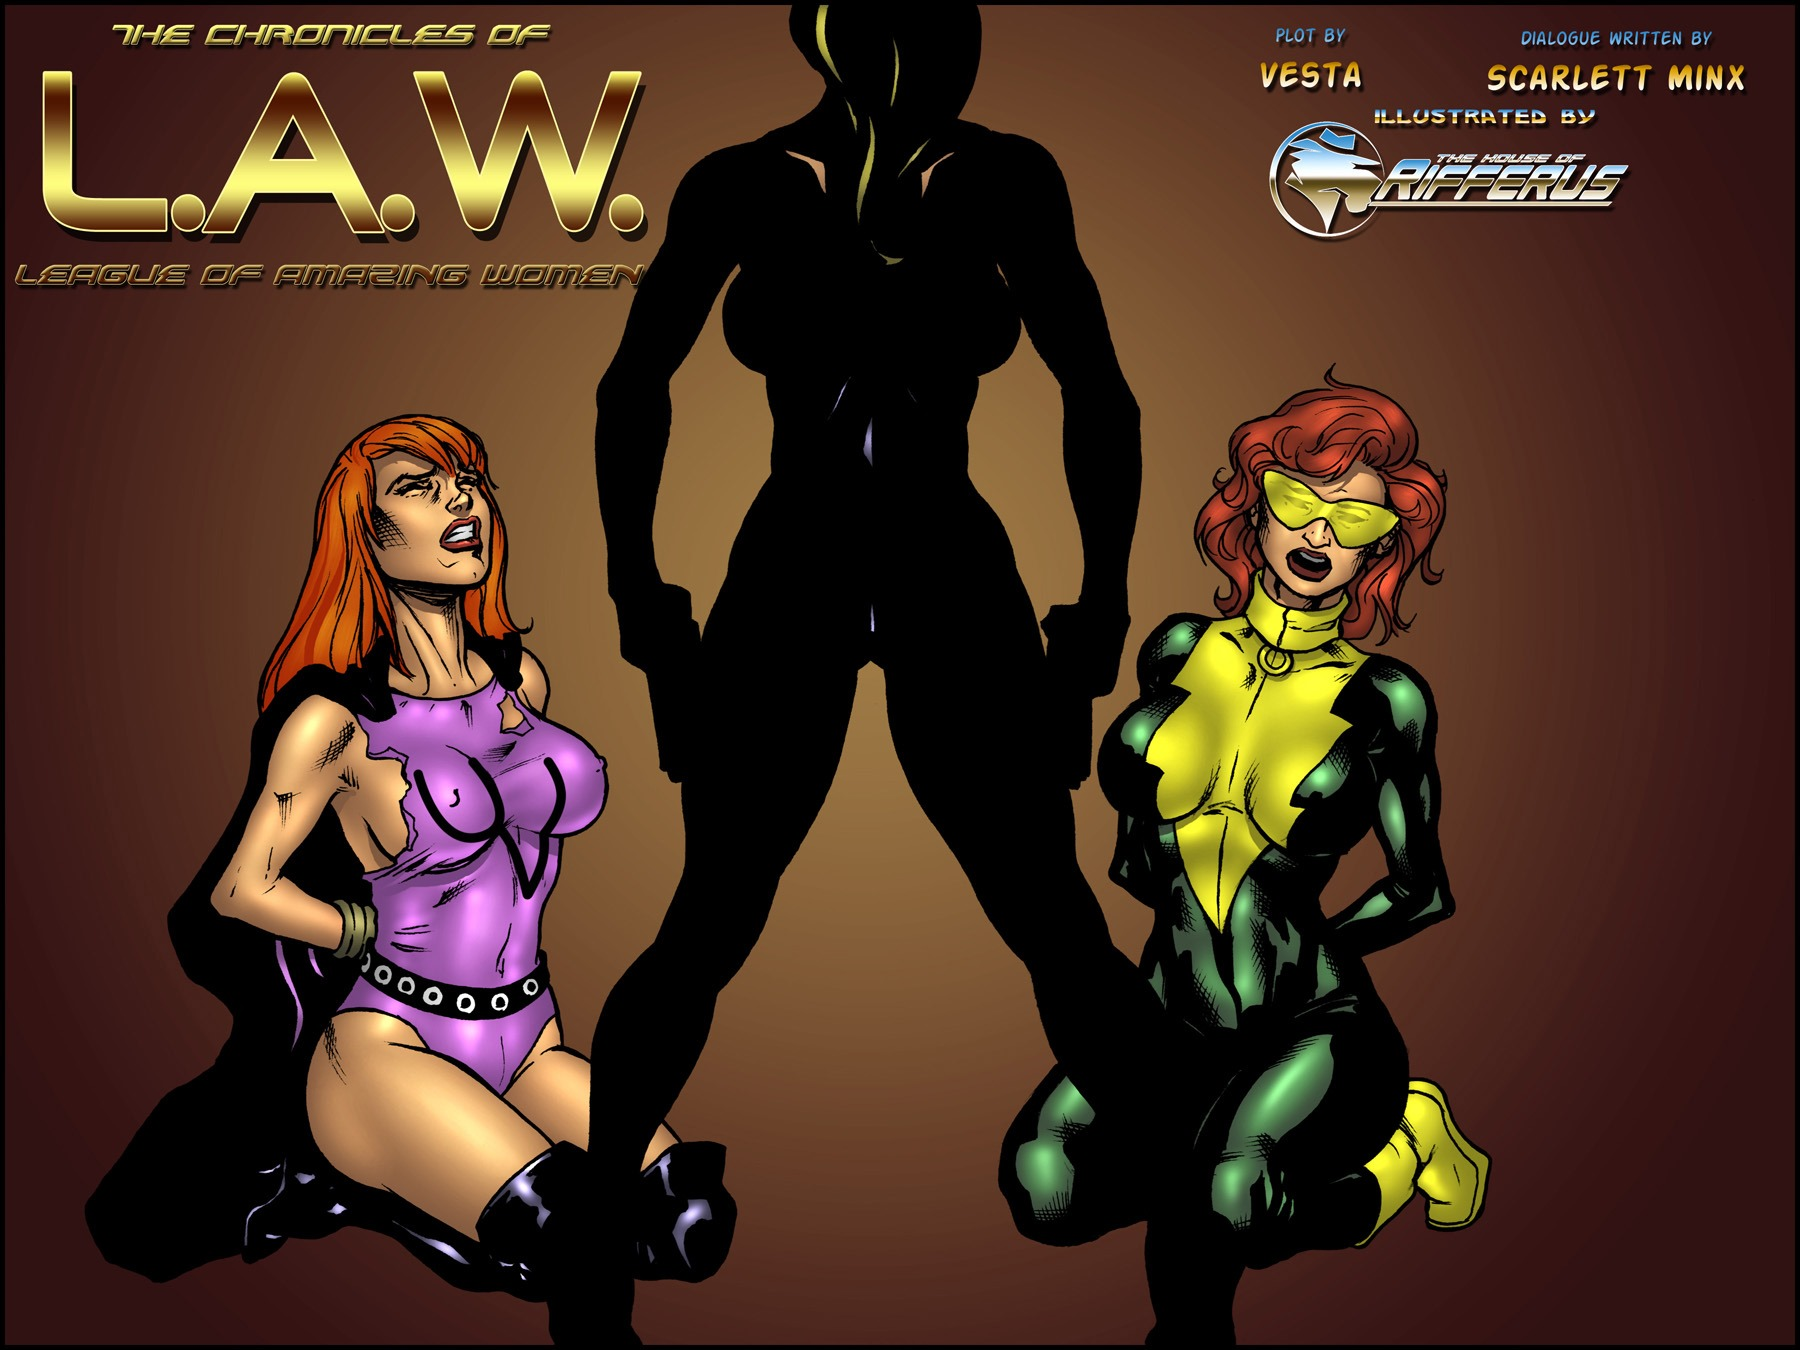 Porn Comics - The Chronicles Of L.A.W. Issue 1-4 porn comics 8 muses